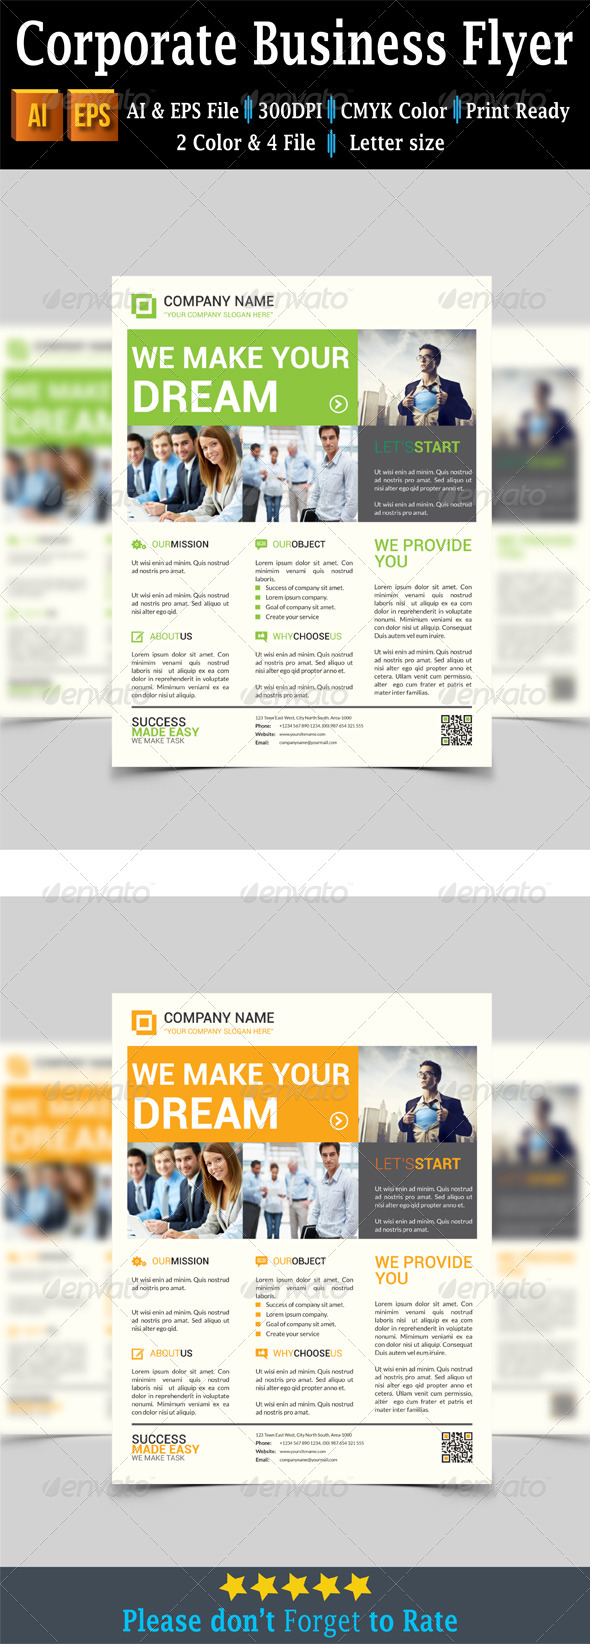 GraphicRiver Corporate Business Flyer 7646208